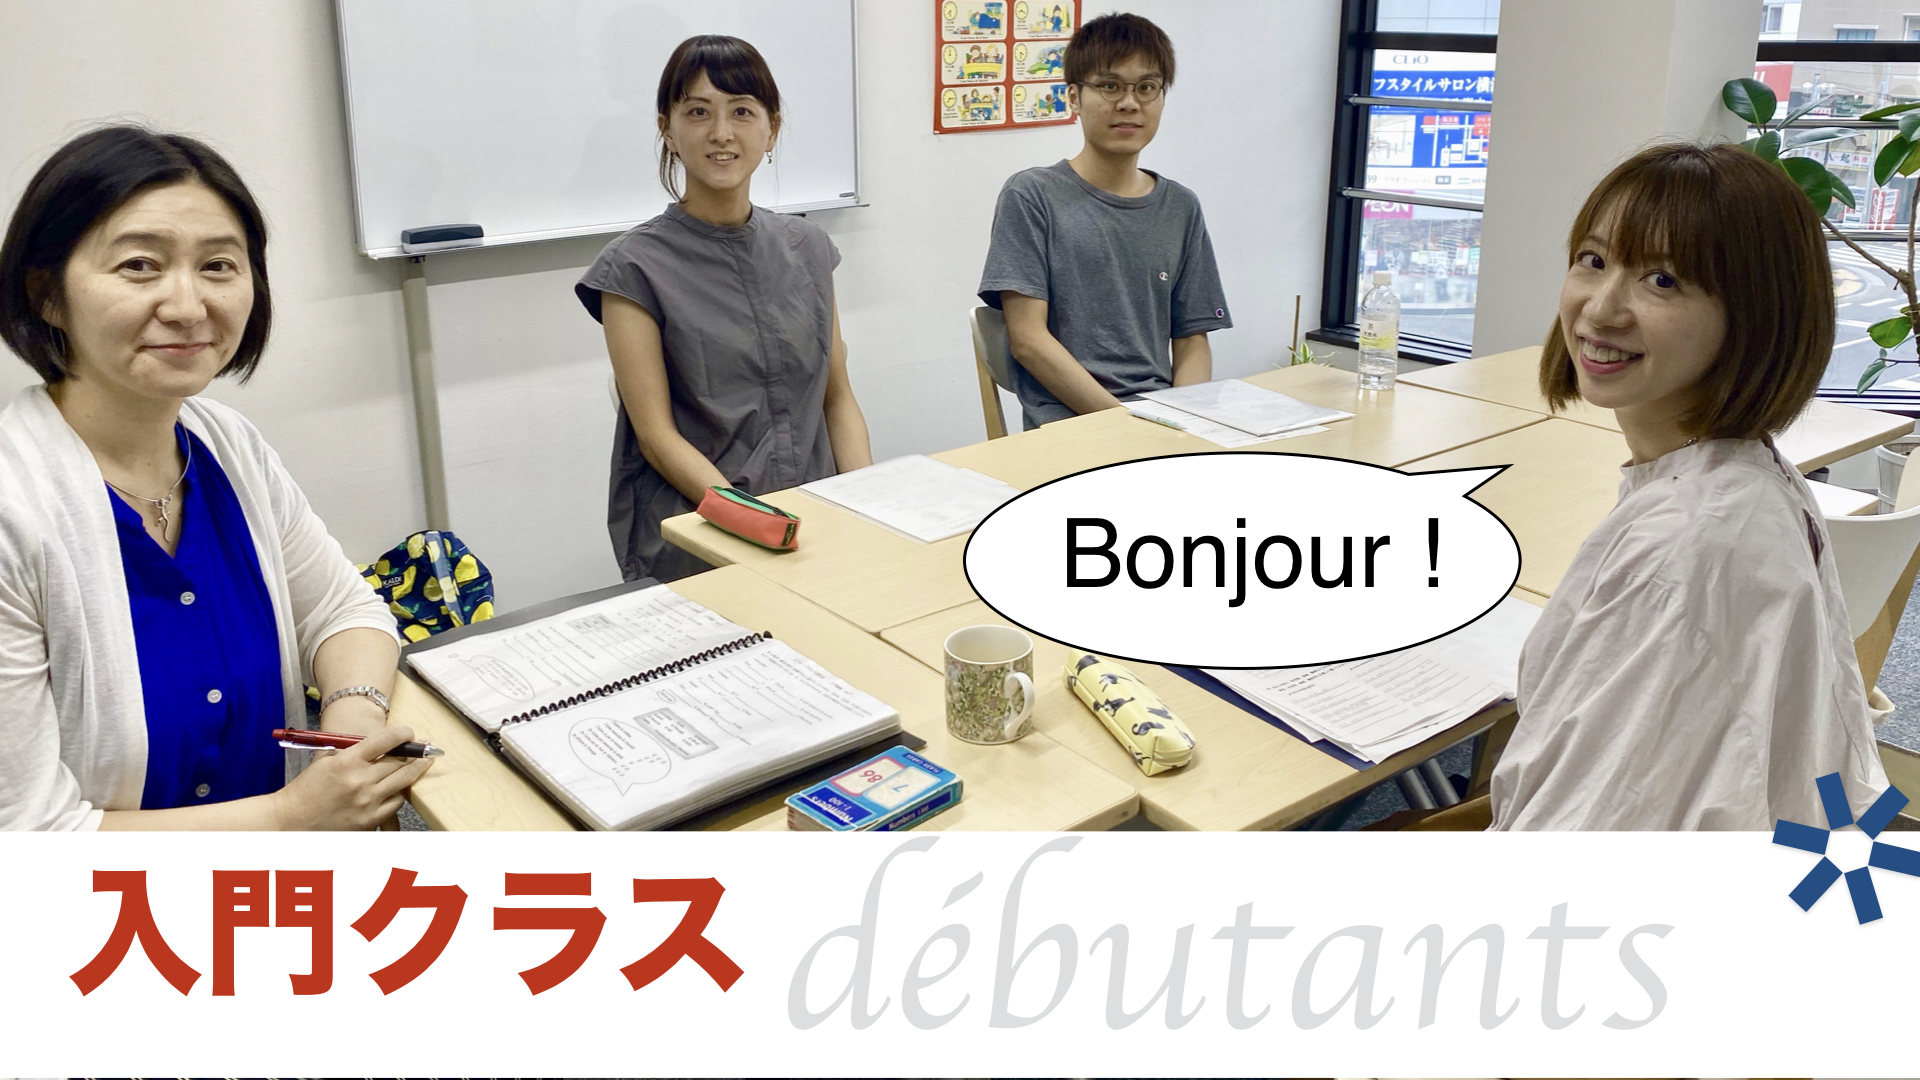 Learn French Yokohama